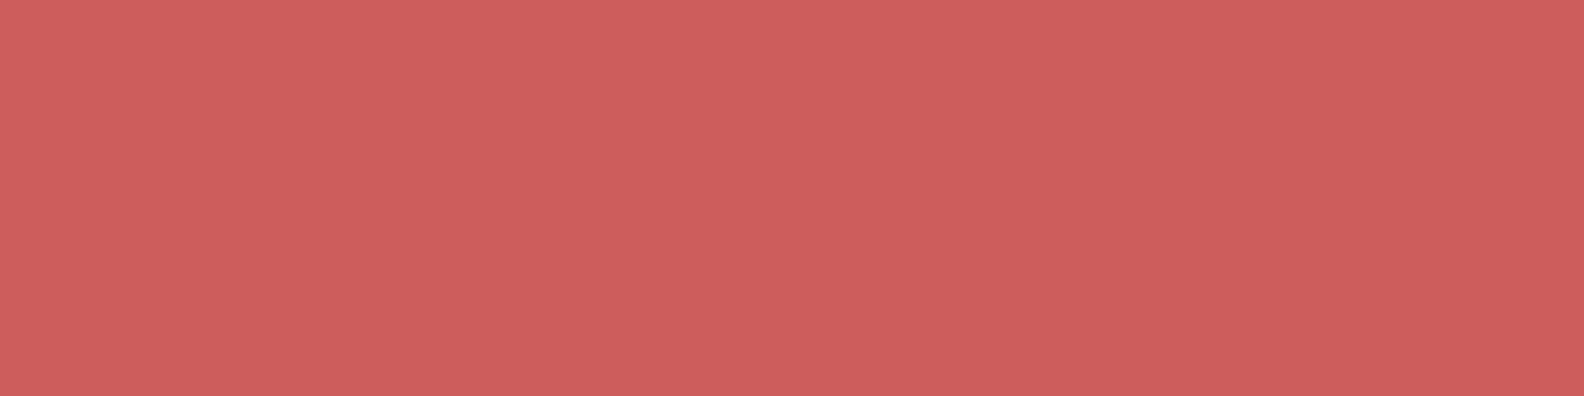 1584x396 Indian Red Solid Color Background